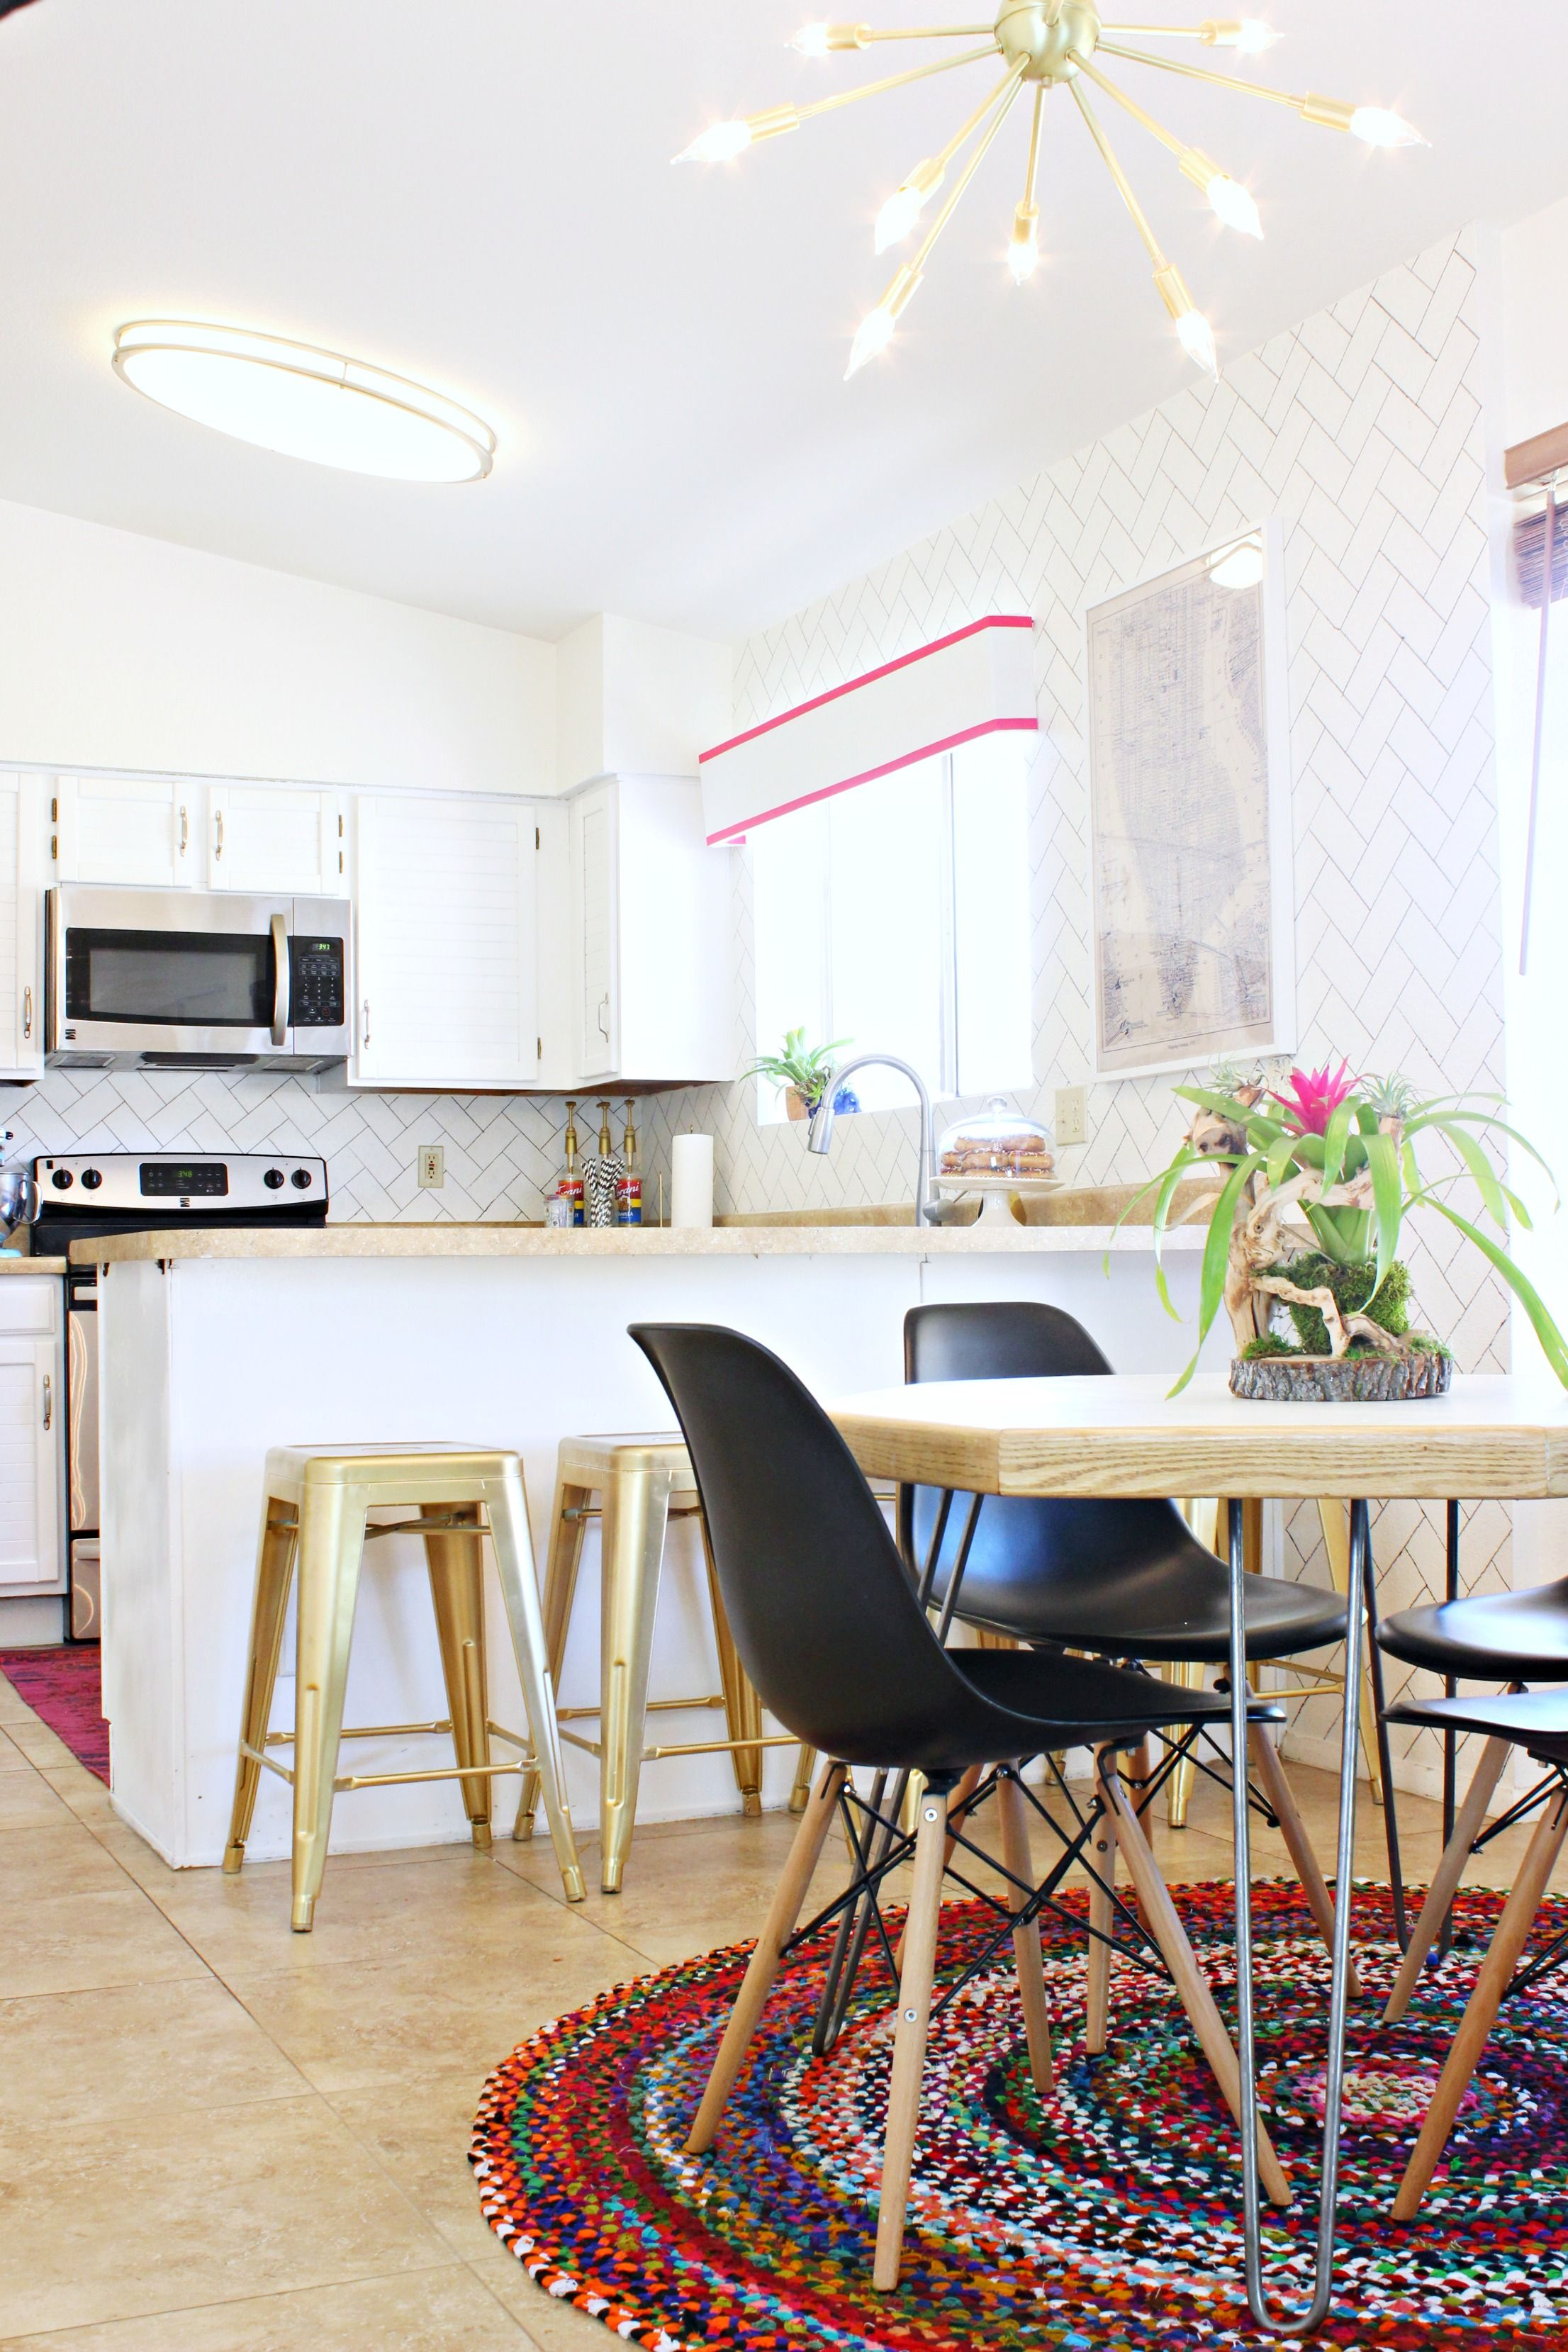 Spray paint for kitchen cupboards   Fabulous Projects to Spray Paint Gold  DIY Home Improvement